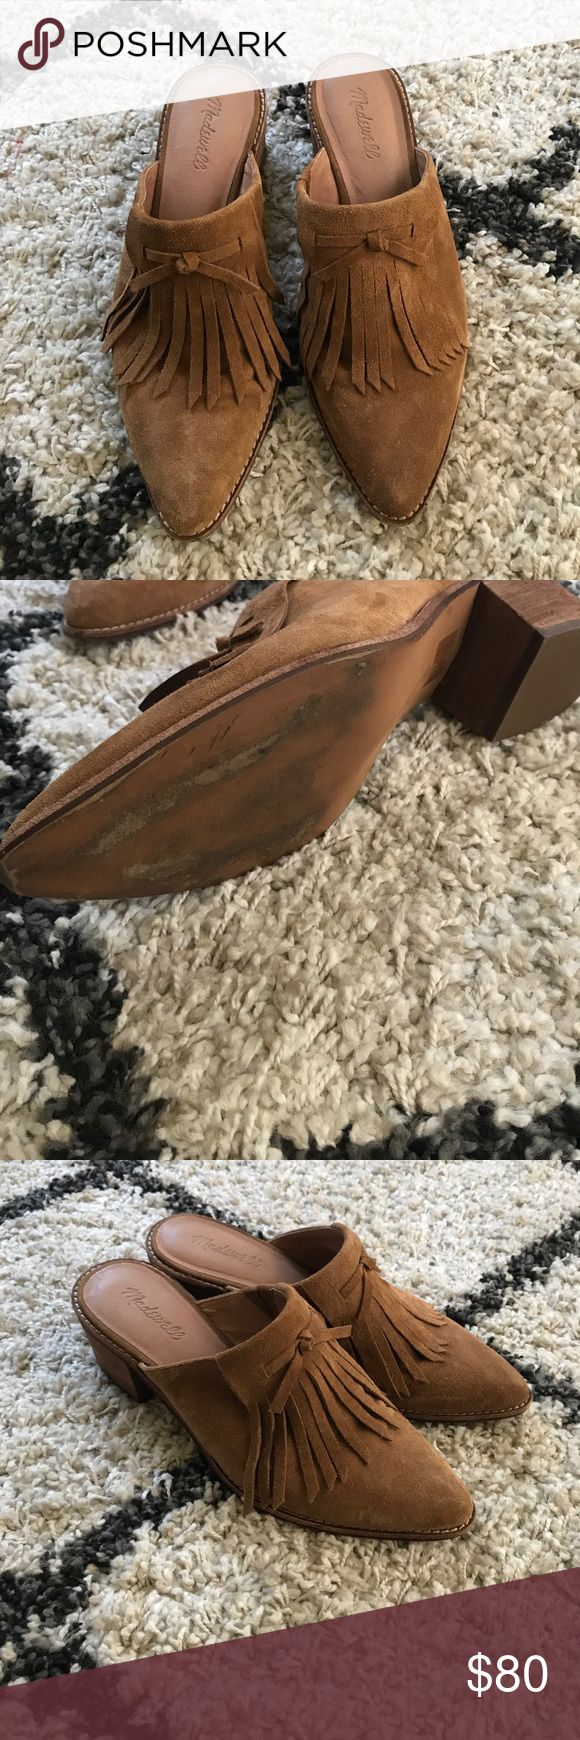 Madewell coveted fringe suede mules clogs Sz 10 Excellent condition! Madewell fringe mule clogs in a Sz 10! Madewell Shoes Mules & Clogs